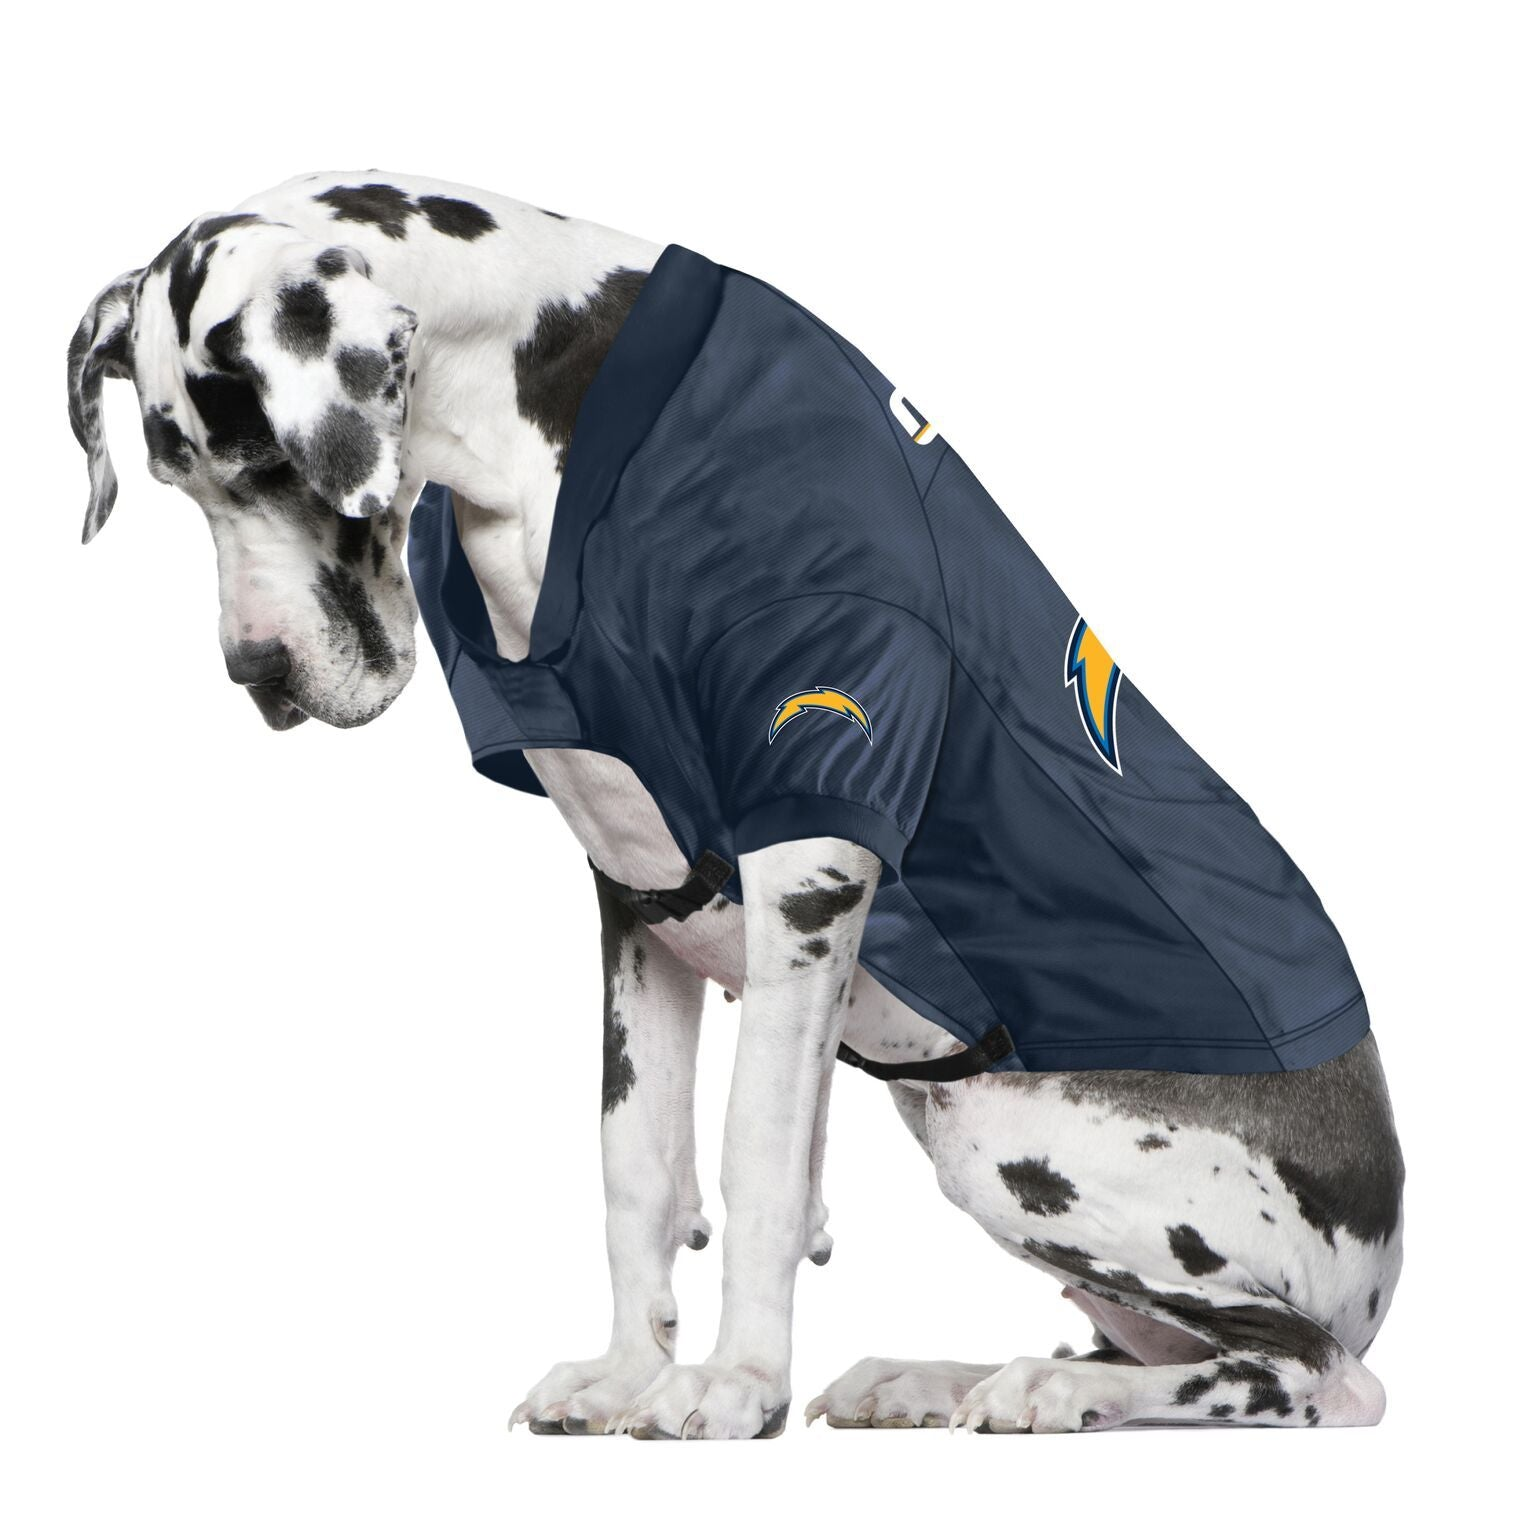 Chargers Fan Jersey For Your Dog